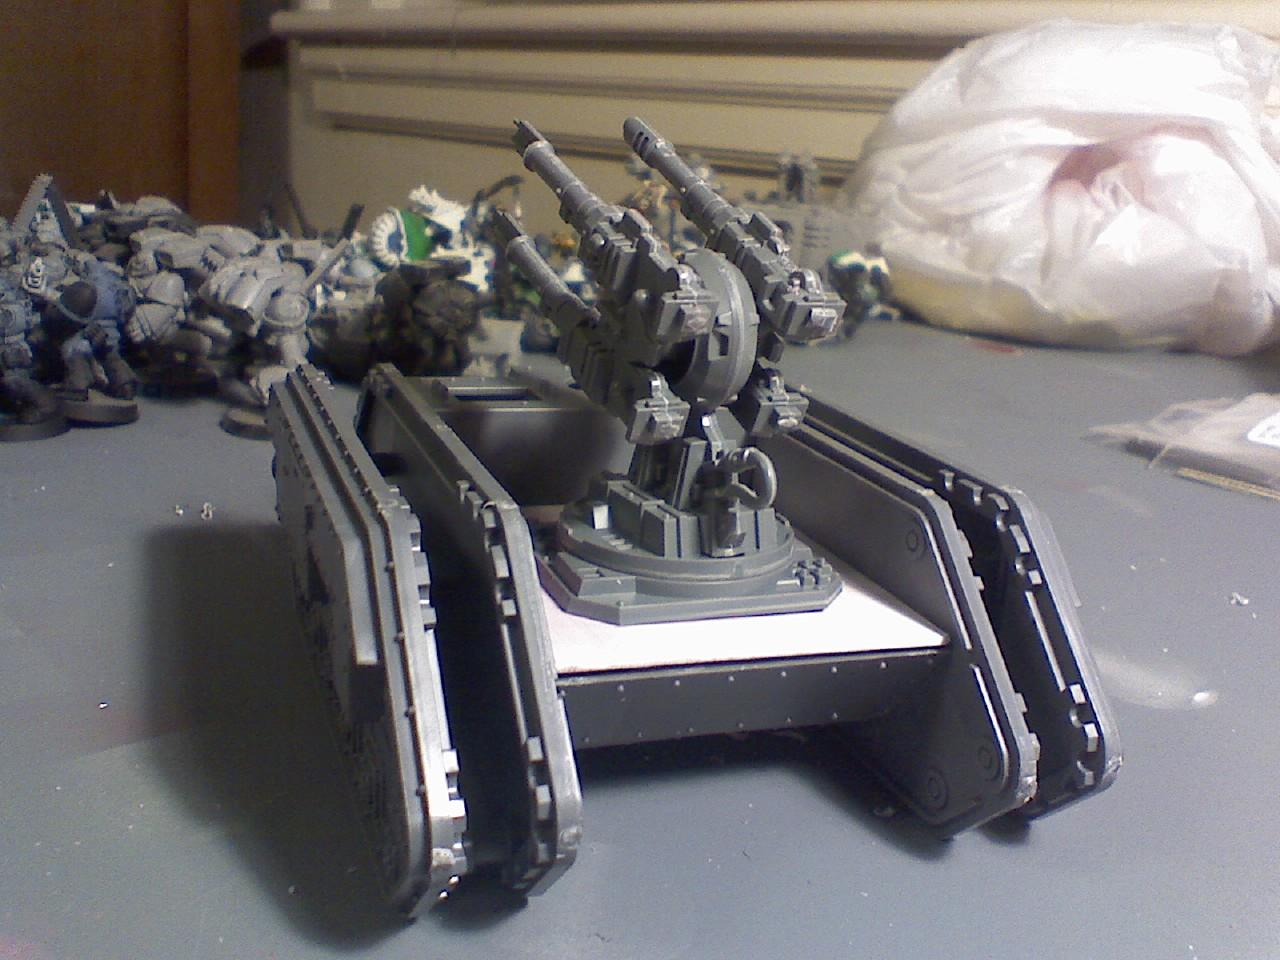 Chimera, Conversion, Hydra, Imperial Guard, Warhammer 40,000, Work In Progress